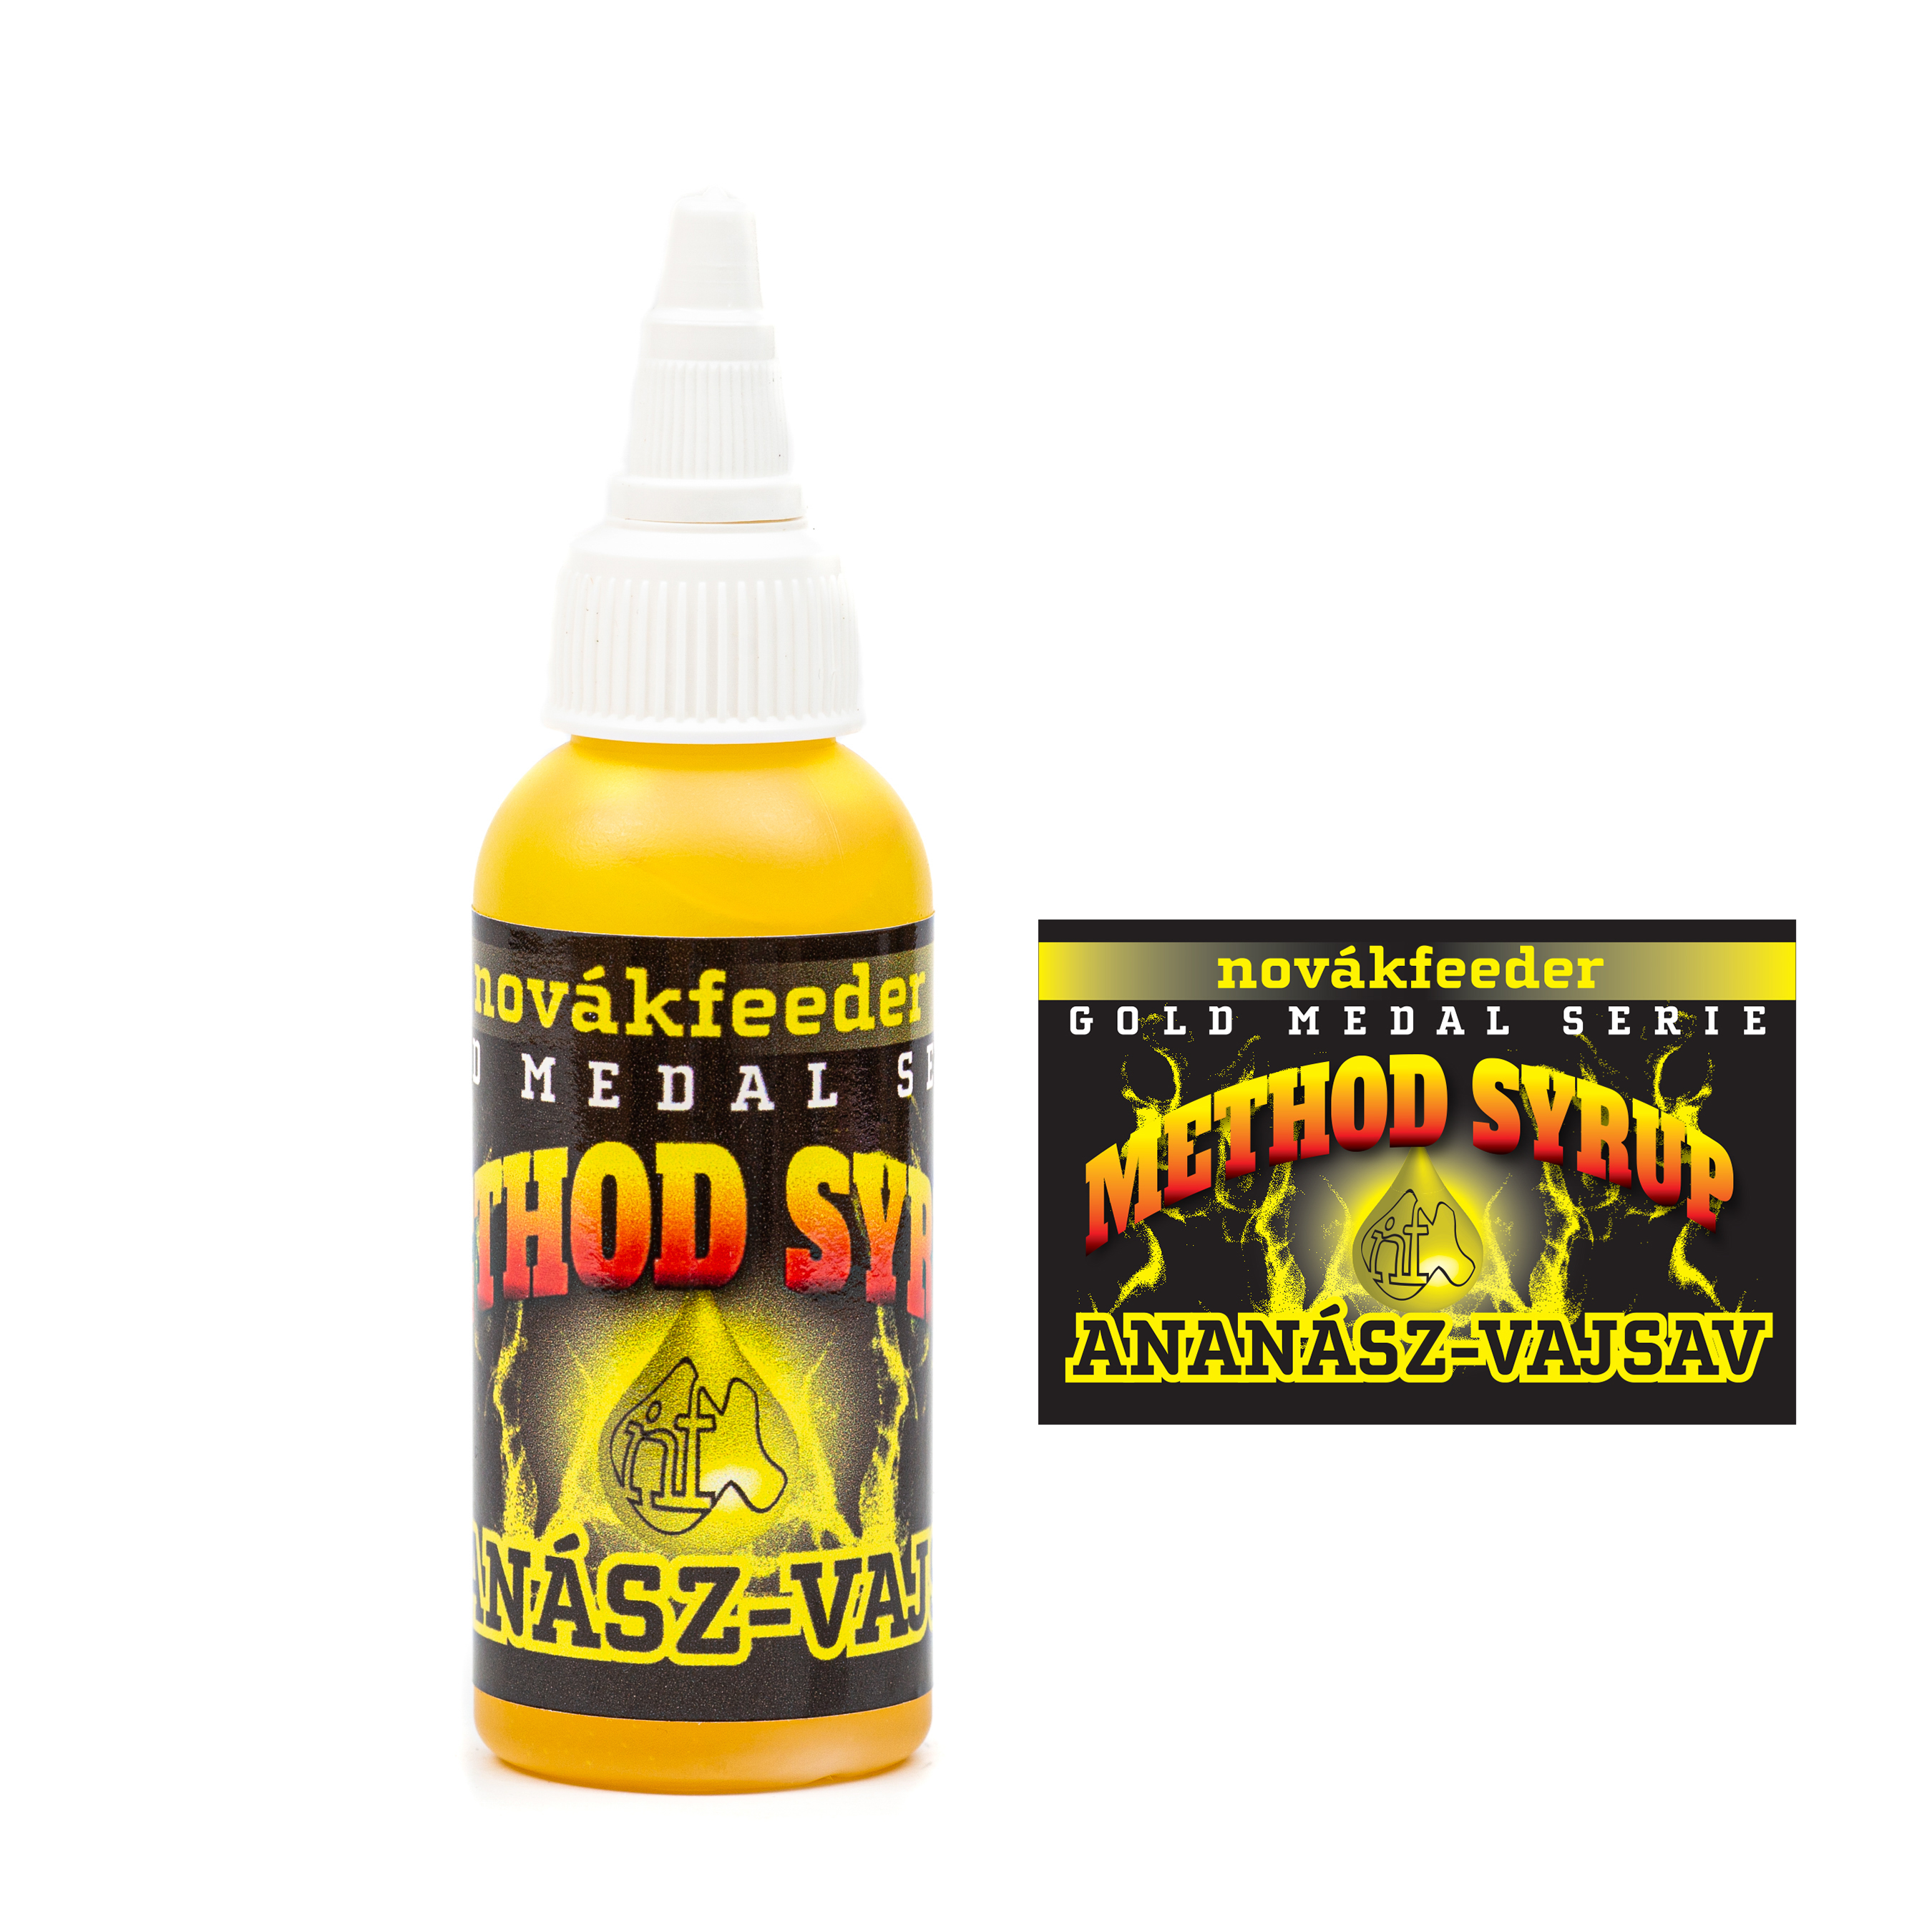 Novák Feeder Method syrup 60ml - Ananas-N-Butyric